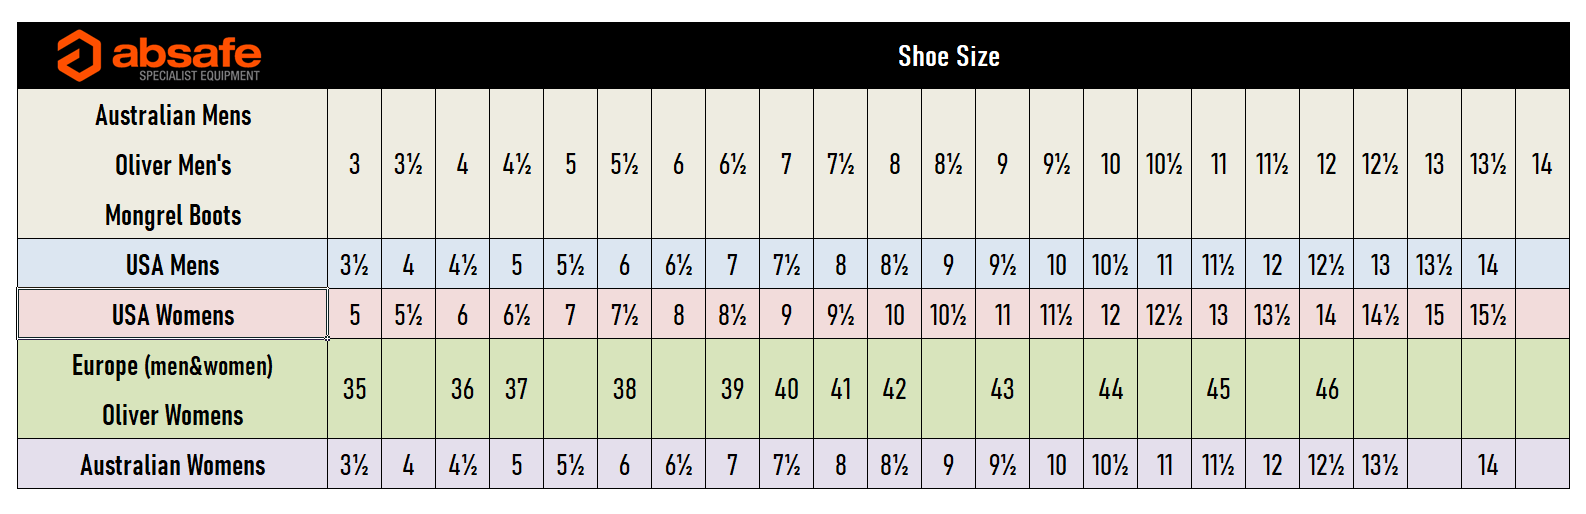 Footwear size conversion chart